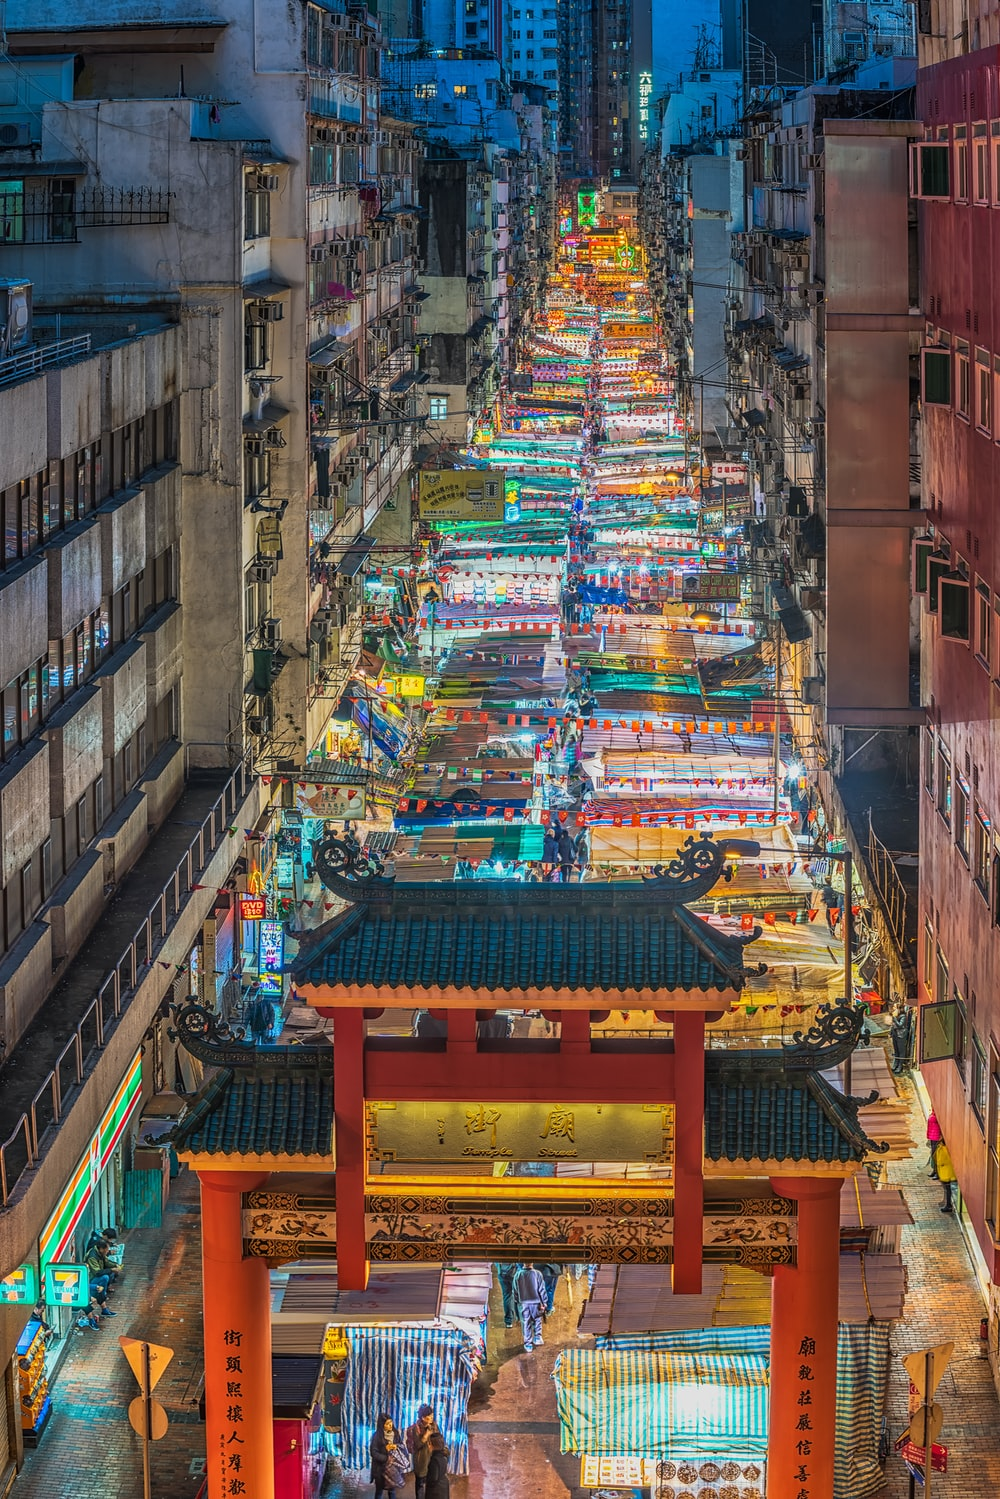 night market in the middle of houses